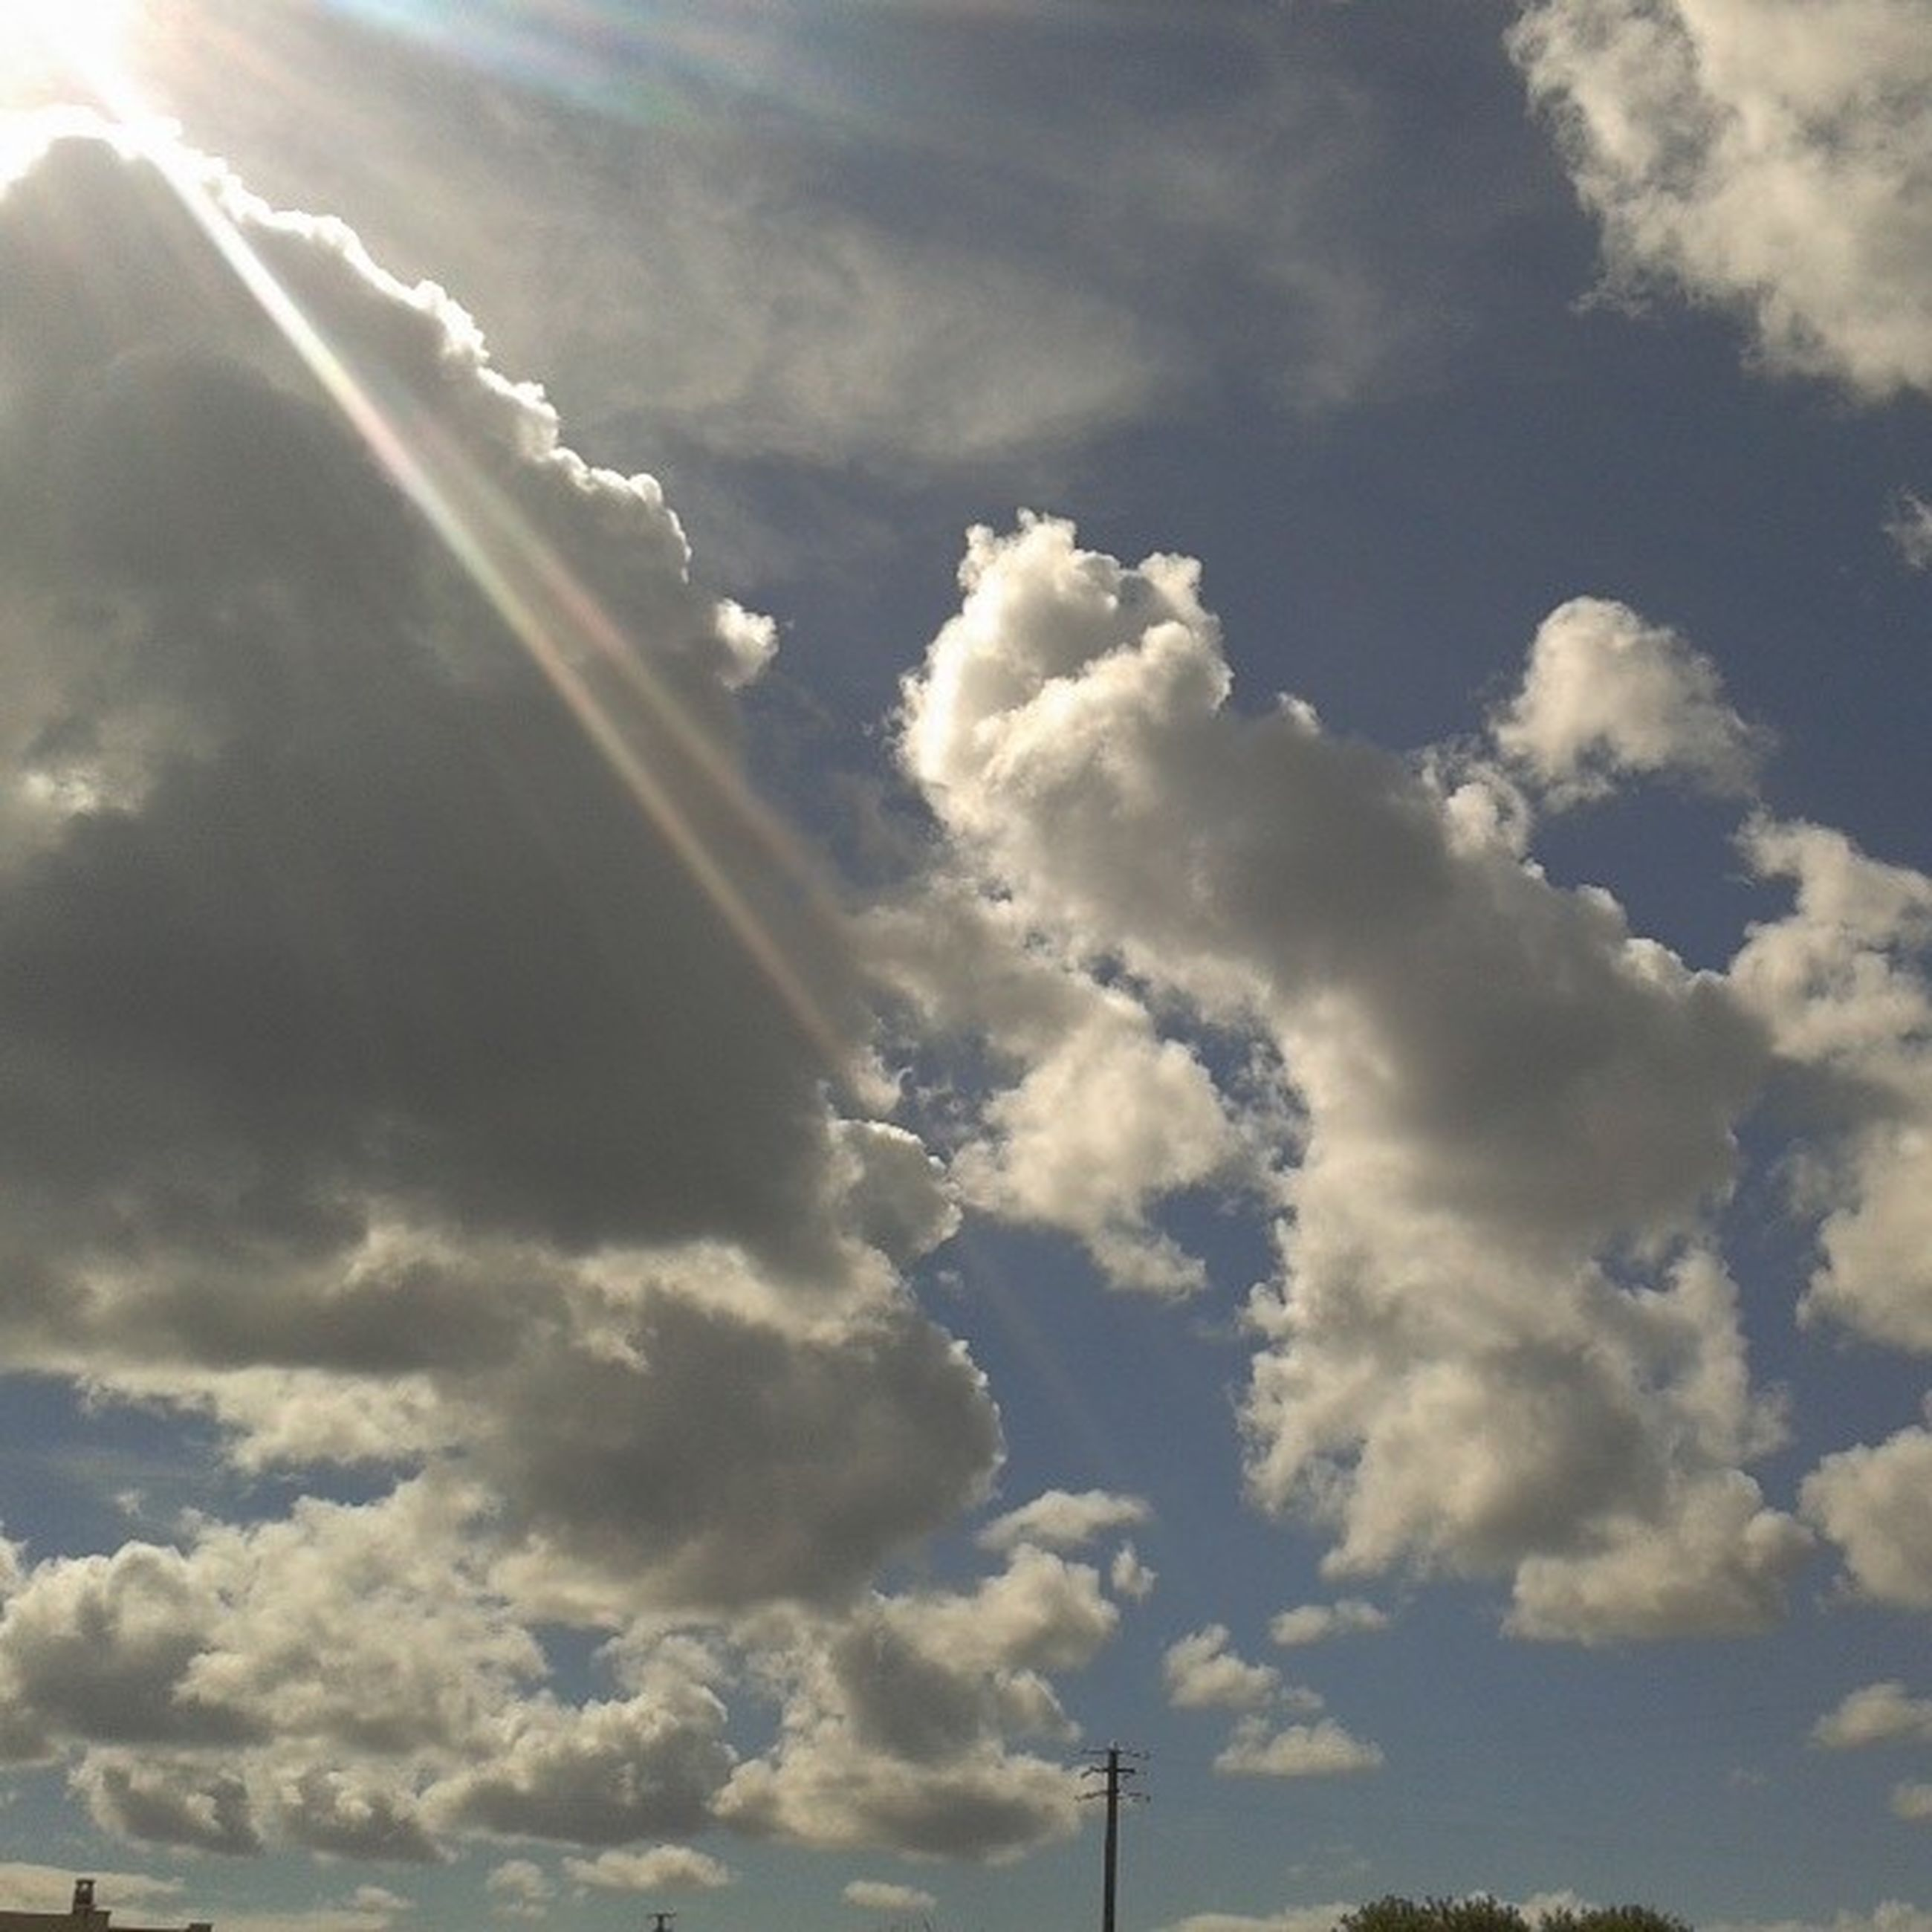 sky, cloud - sky, low angle view, cloudy, beauty in nature, scenics, nature, cloud, cloudscape, tranquility, tranquil scene, sunbeam, sunlight, outdoors, sun, day, weather, no people, sky only, idyllic